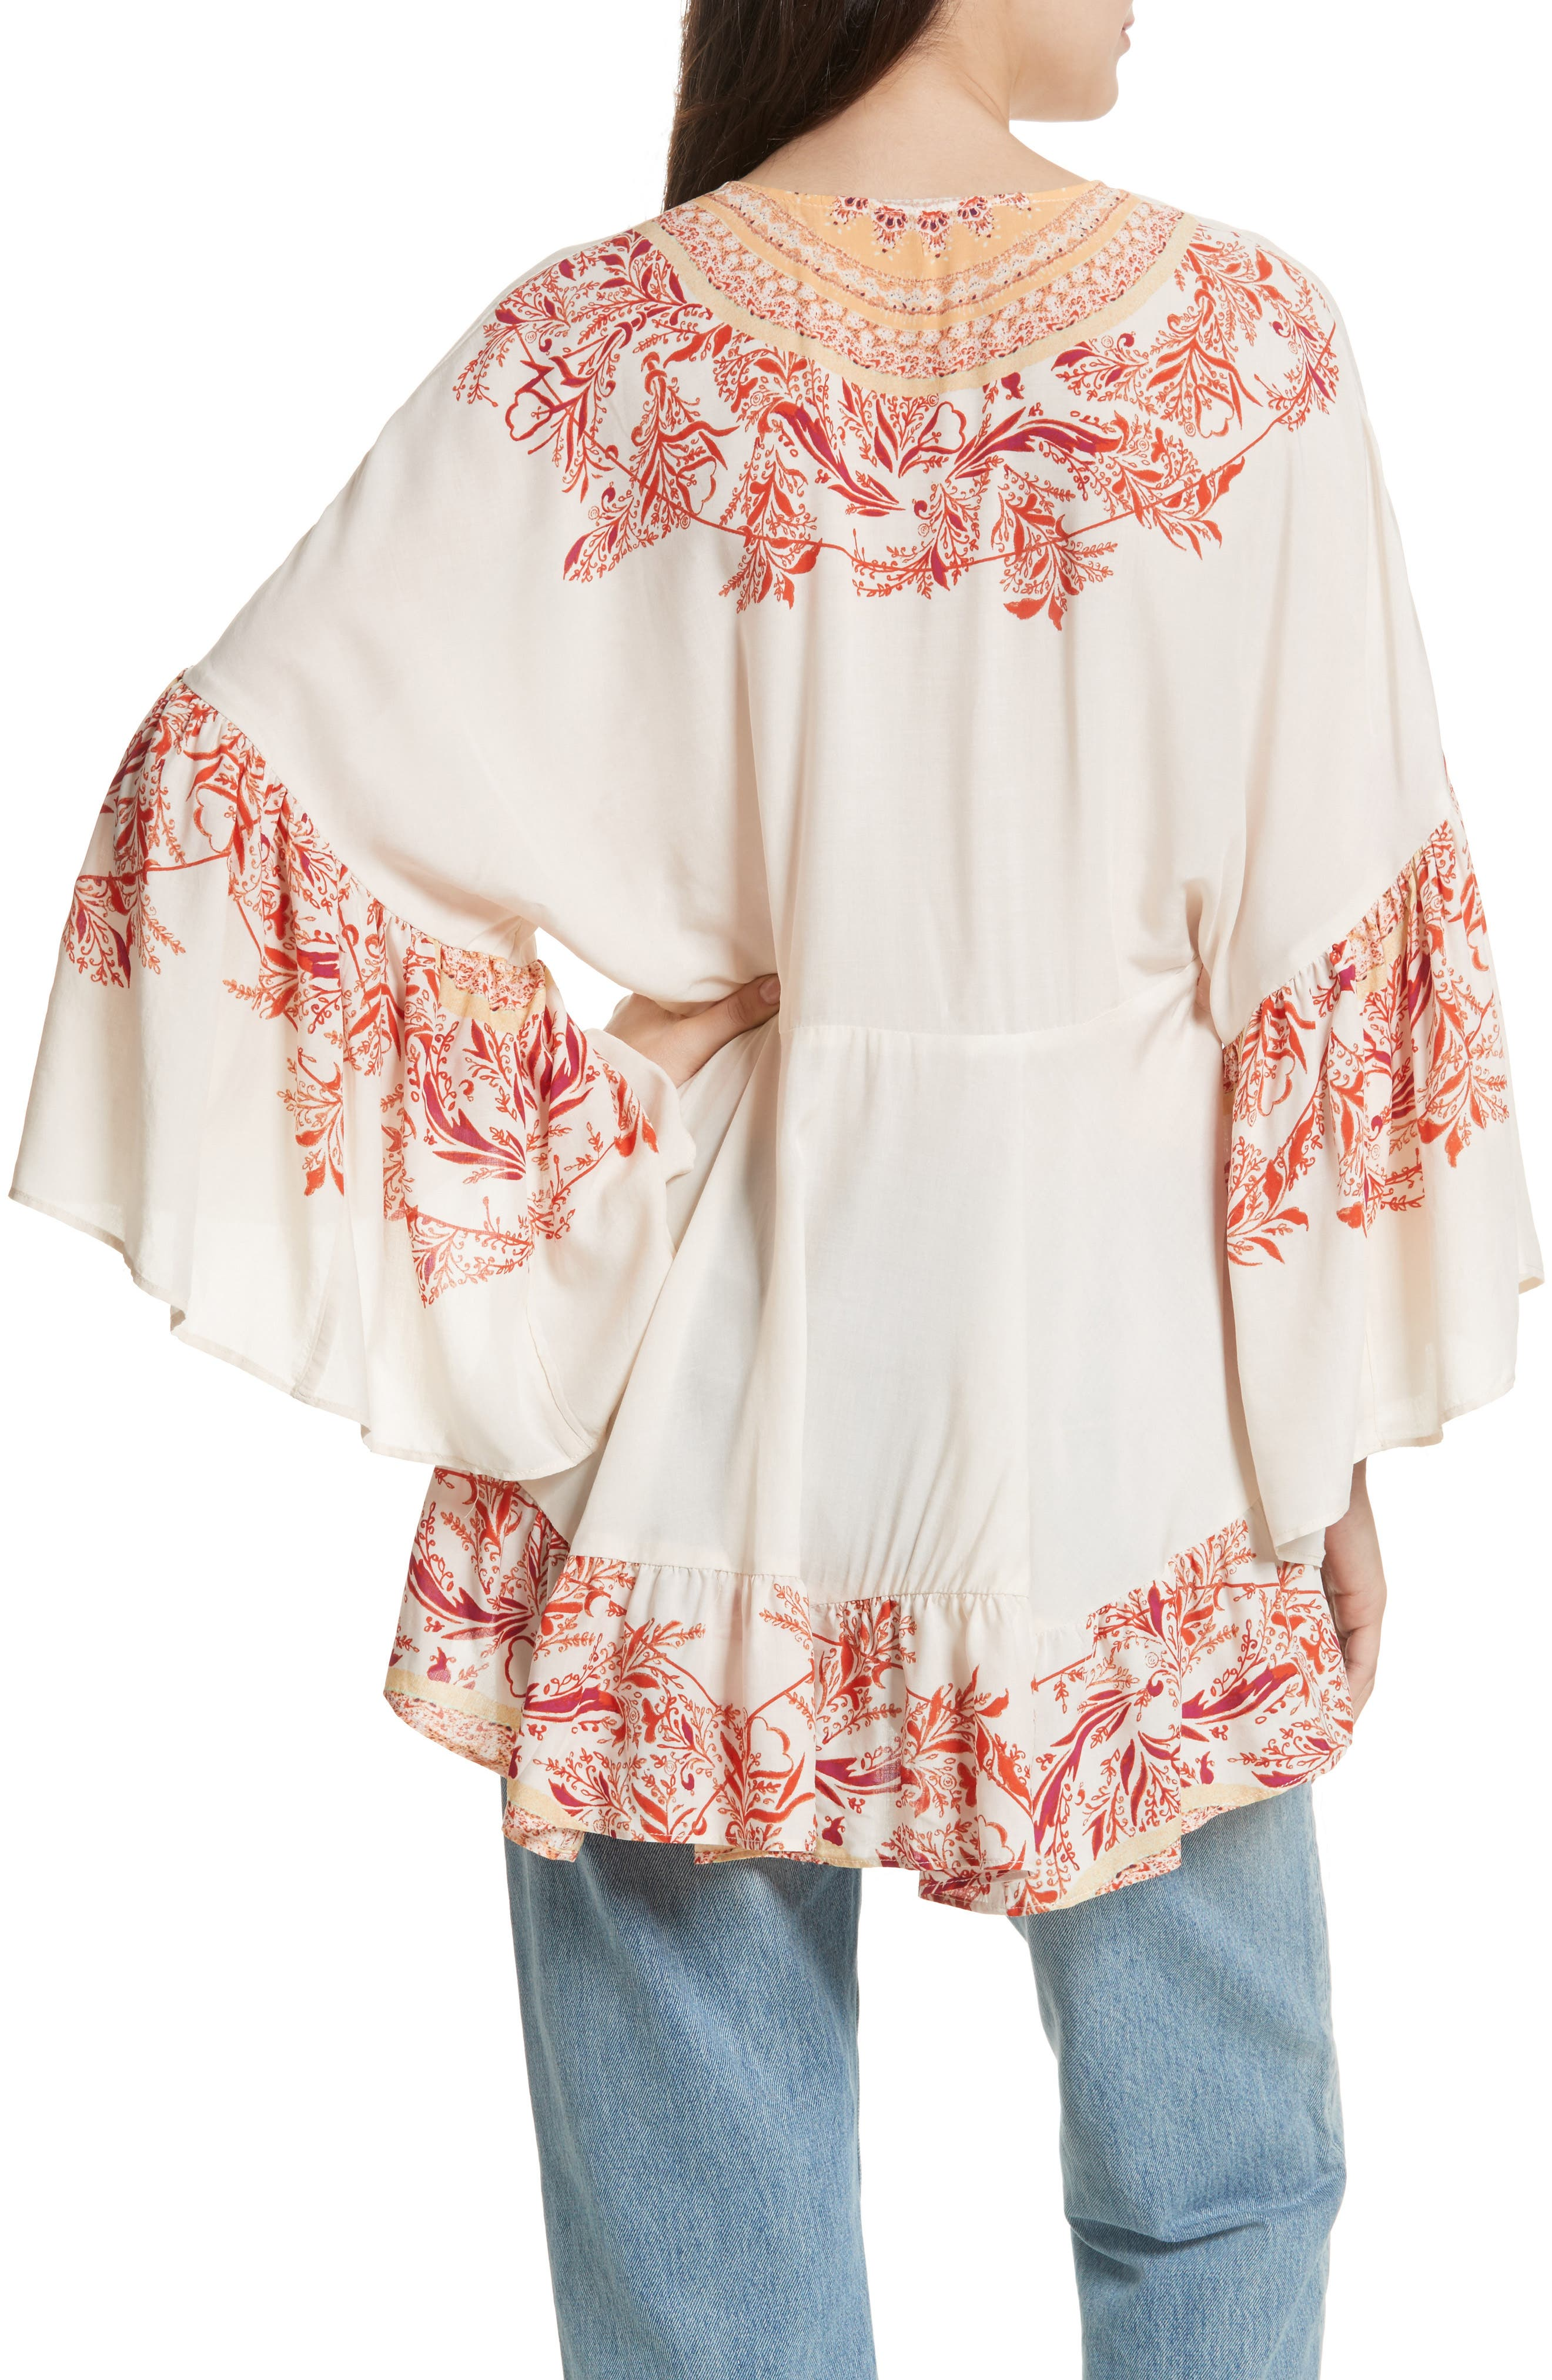 Sunset Dreams Ruffle Top,                             Alternate thumbnail 2, color,                             Sand